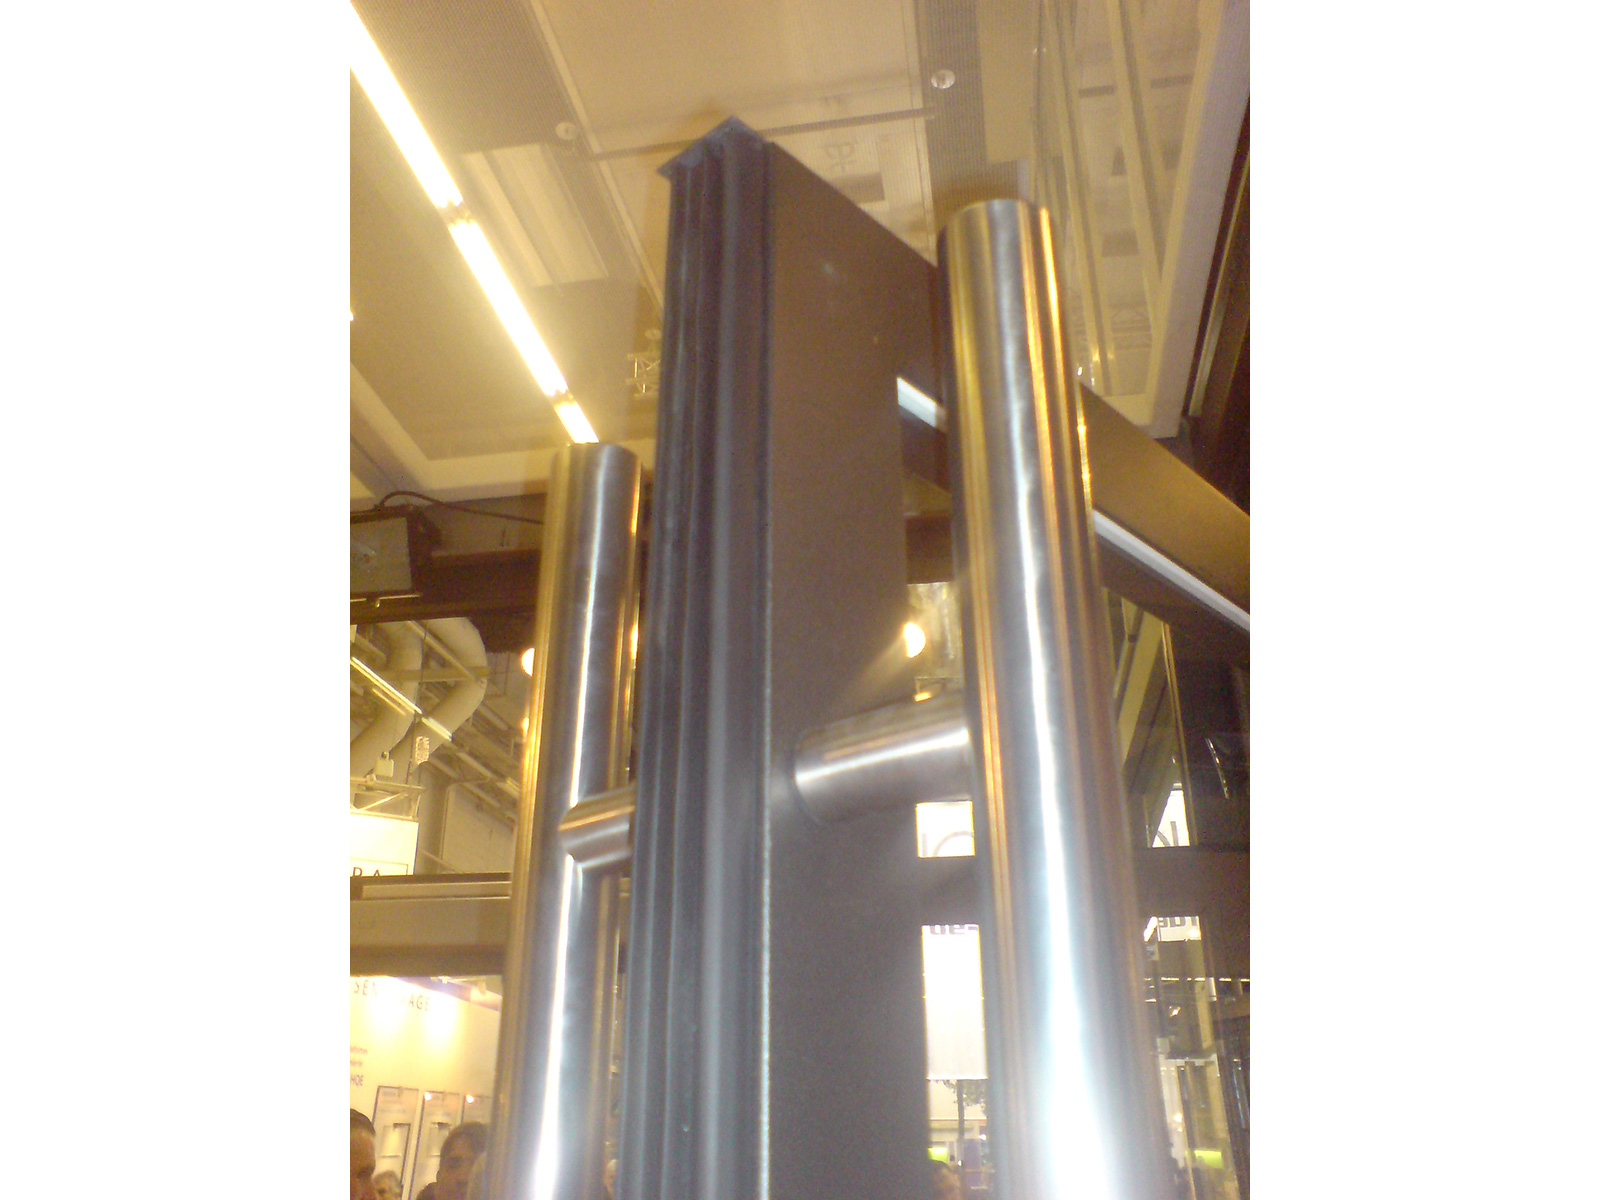 30 00 fire rated steel framed glass partitioning